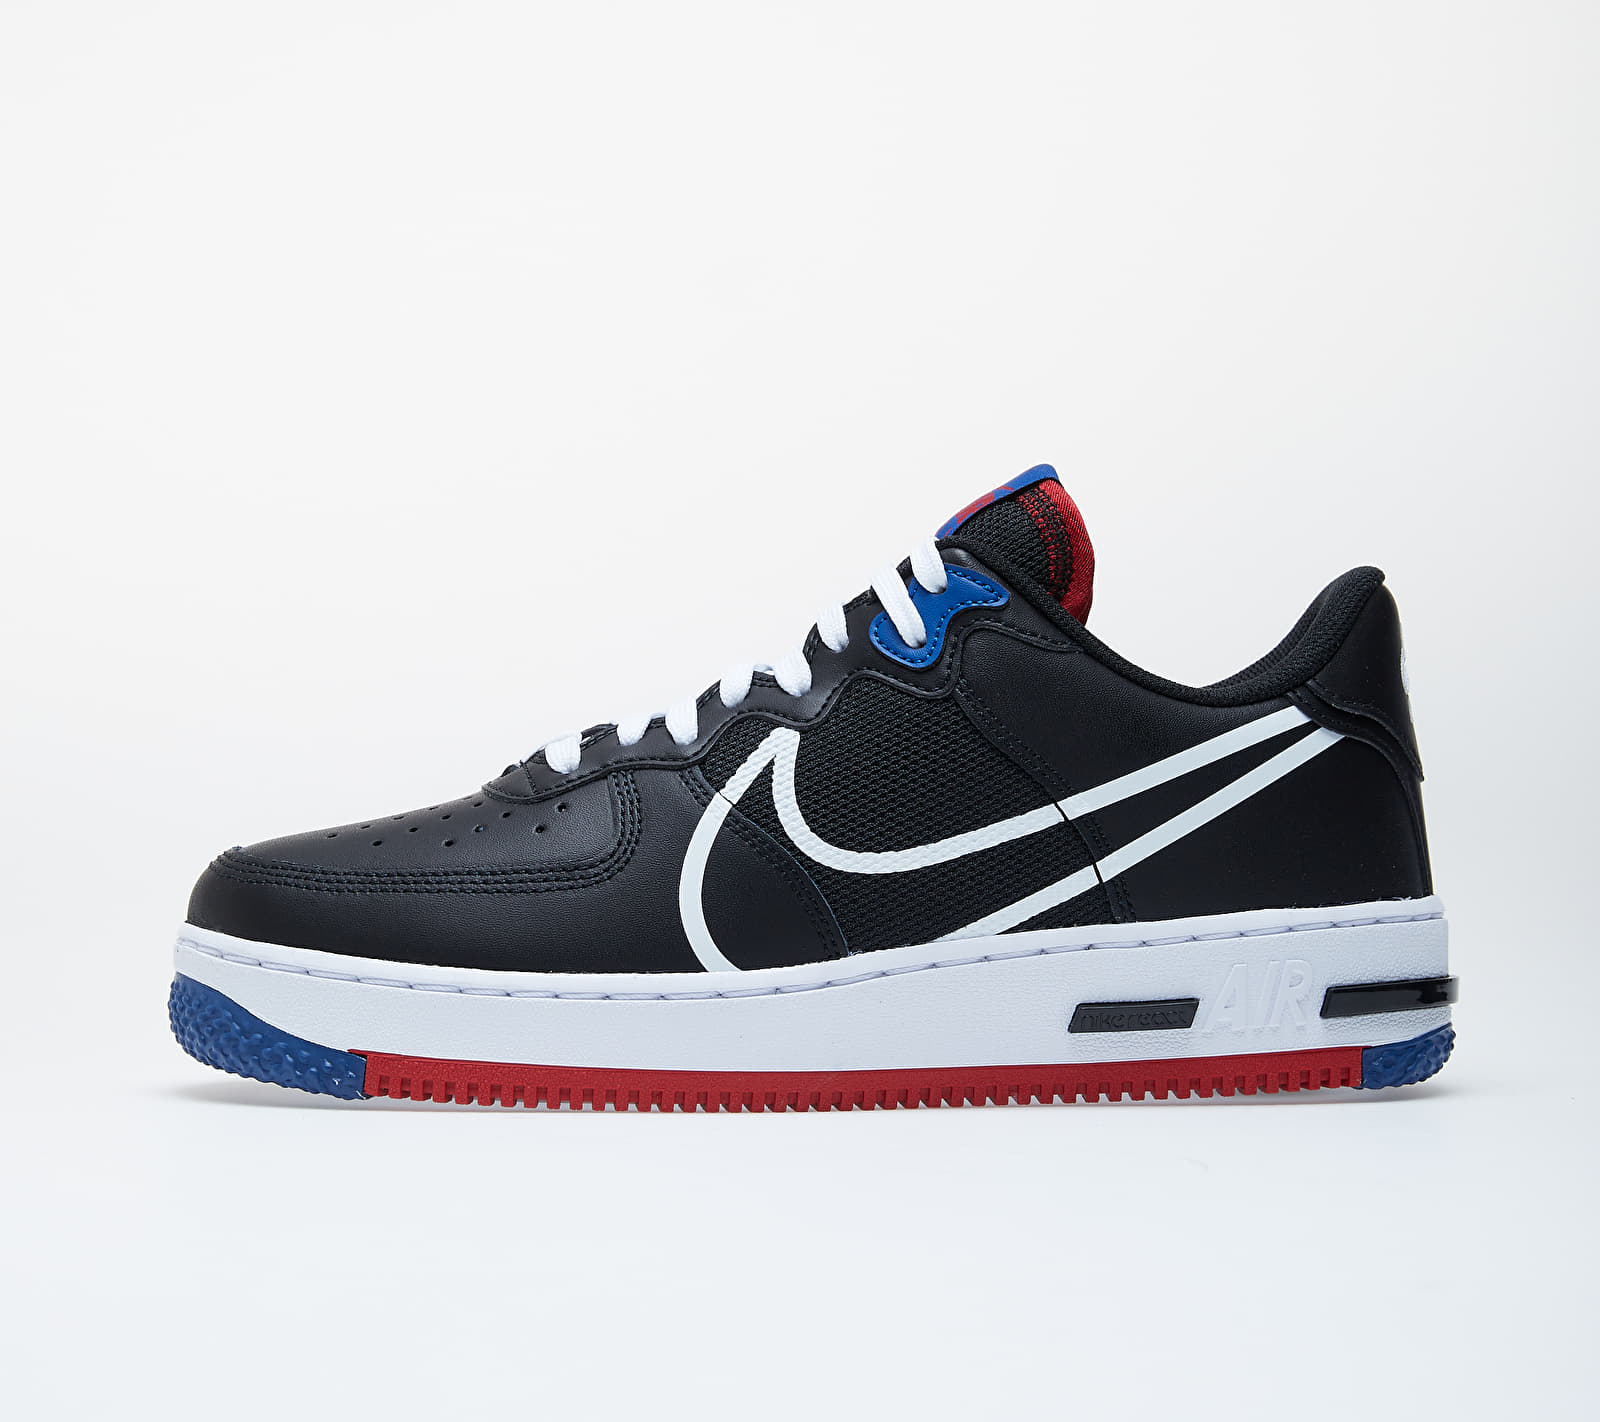 Nike Air Force 1 React Black/ White-Gym Red-Gym Blue CT1020-001